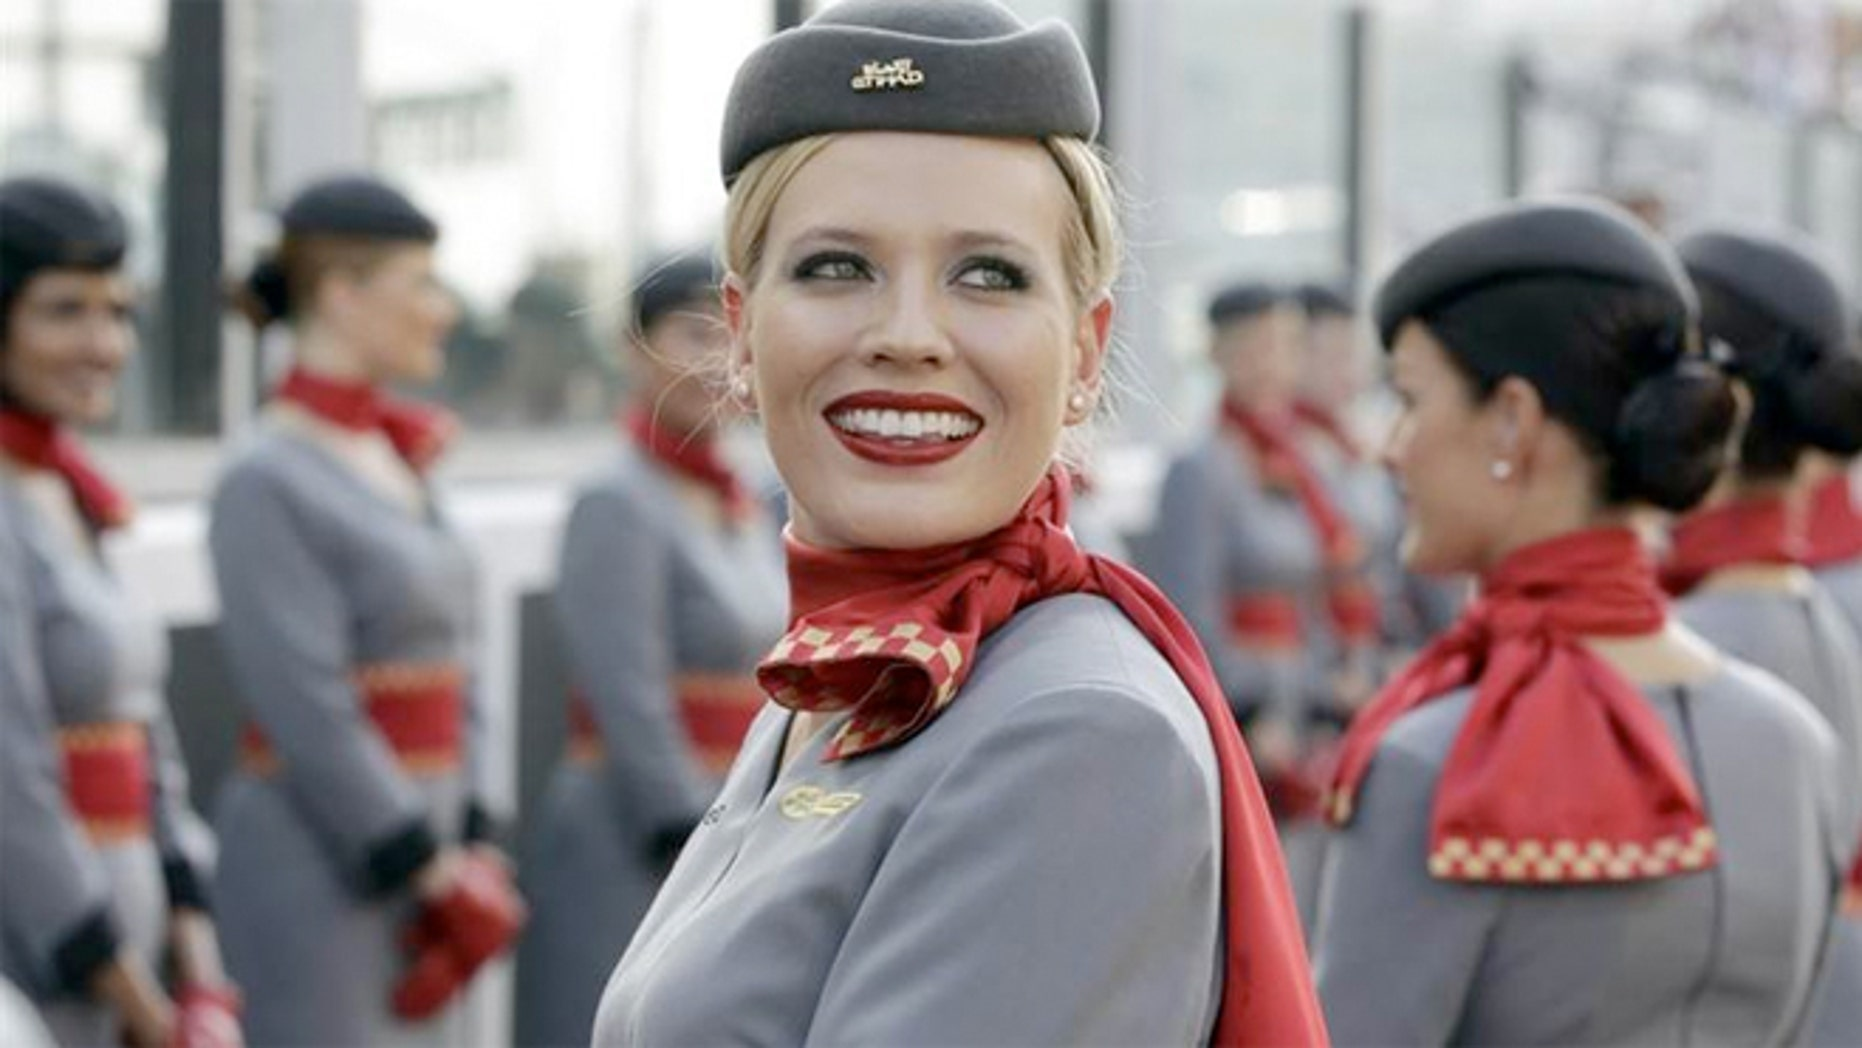 Airline Milf is it cool to ask out a flight attendant? | fox news